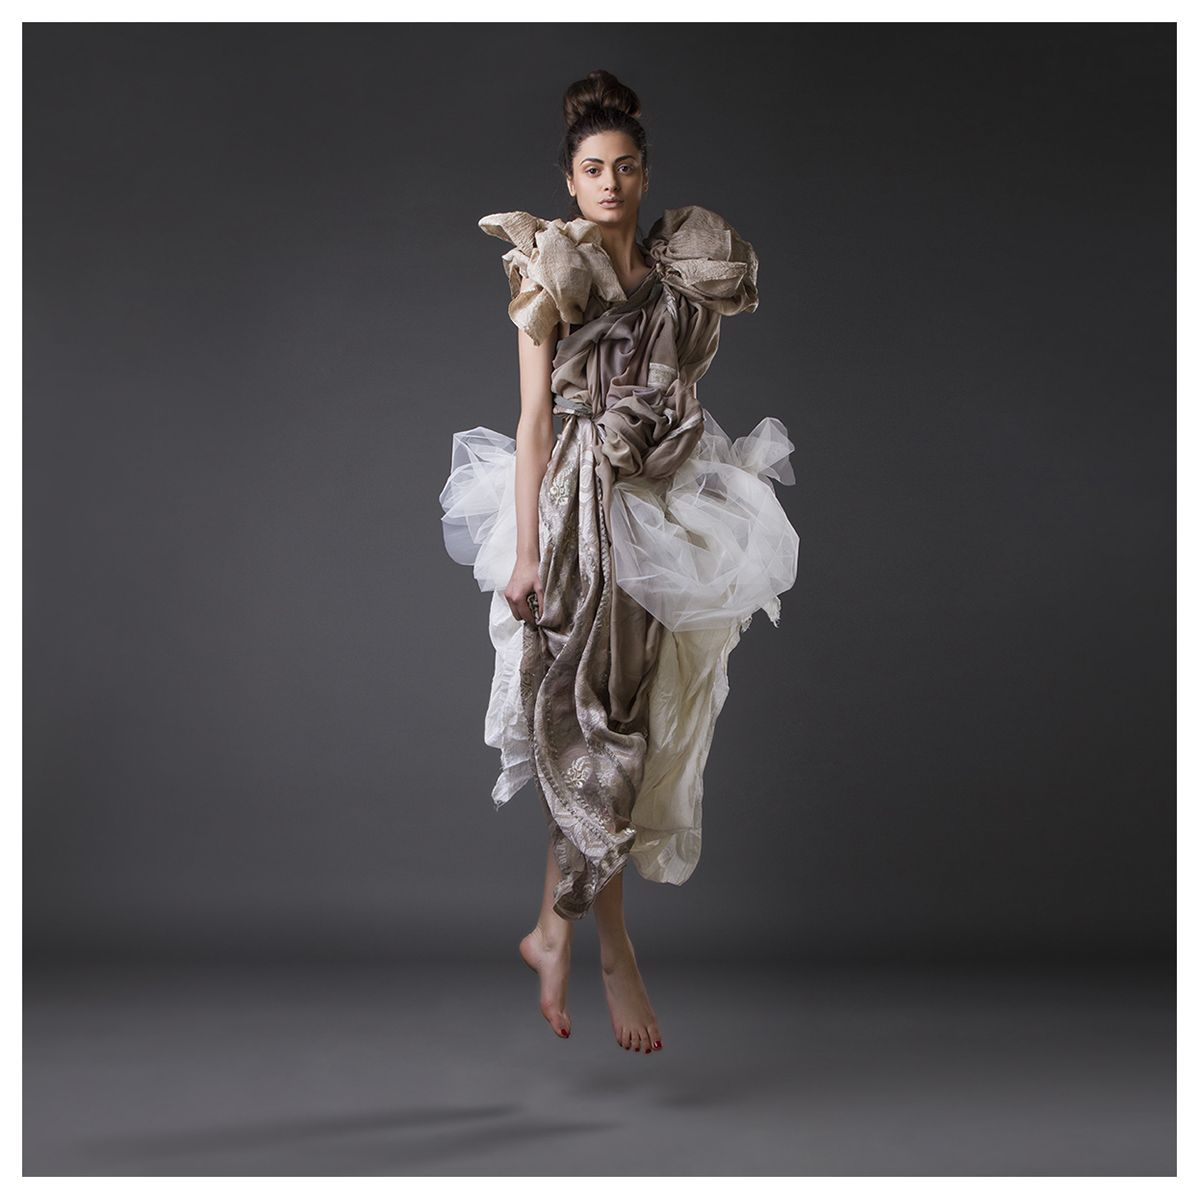 A style story about elegance lightness of different fabrics.